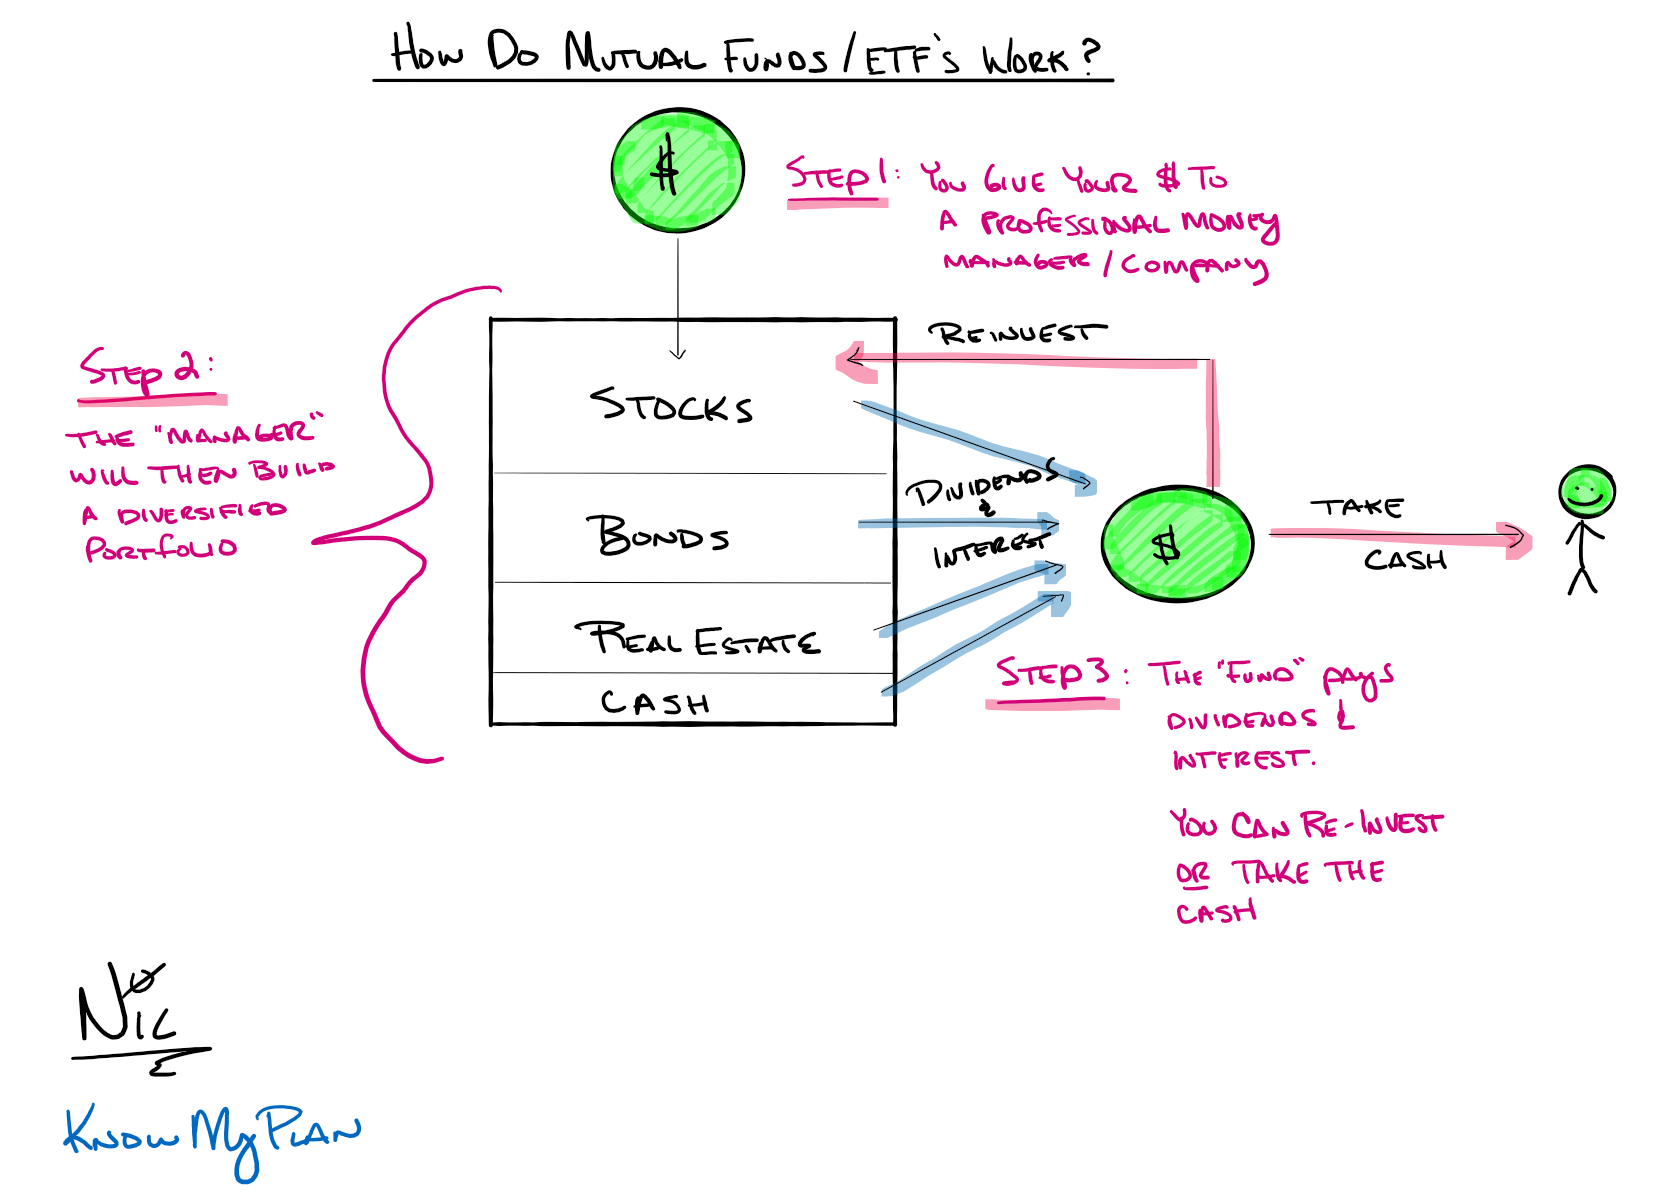 How Do Mutual Funds/ ETF's Work? Thumbnail